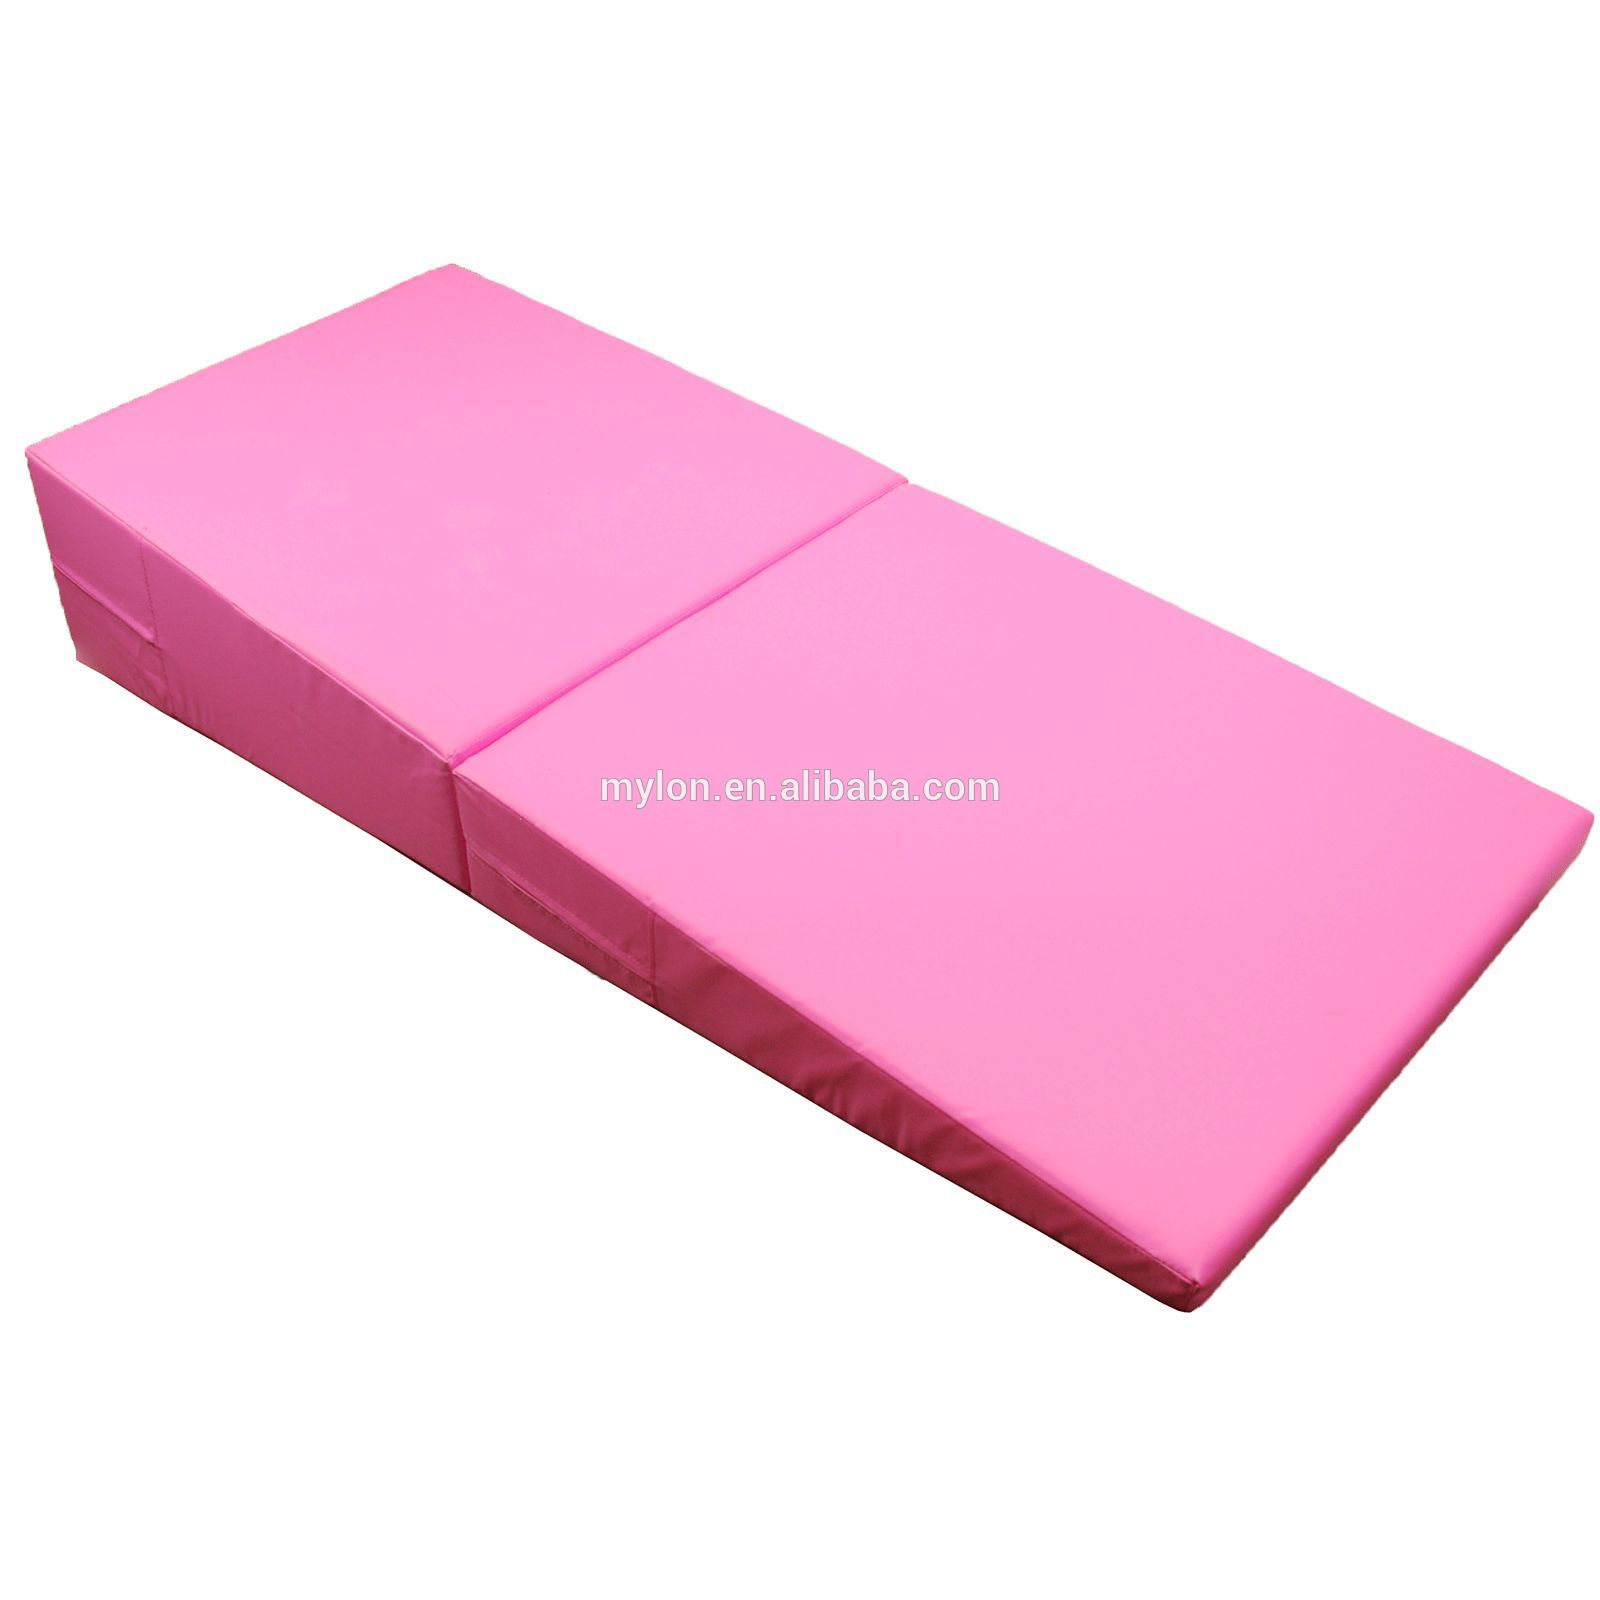 cheese folding incline gymnastics x mat training tumbling dp quot wedge equipment mats medium